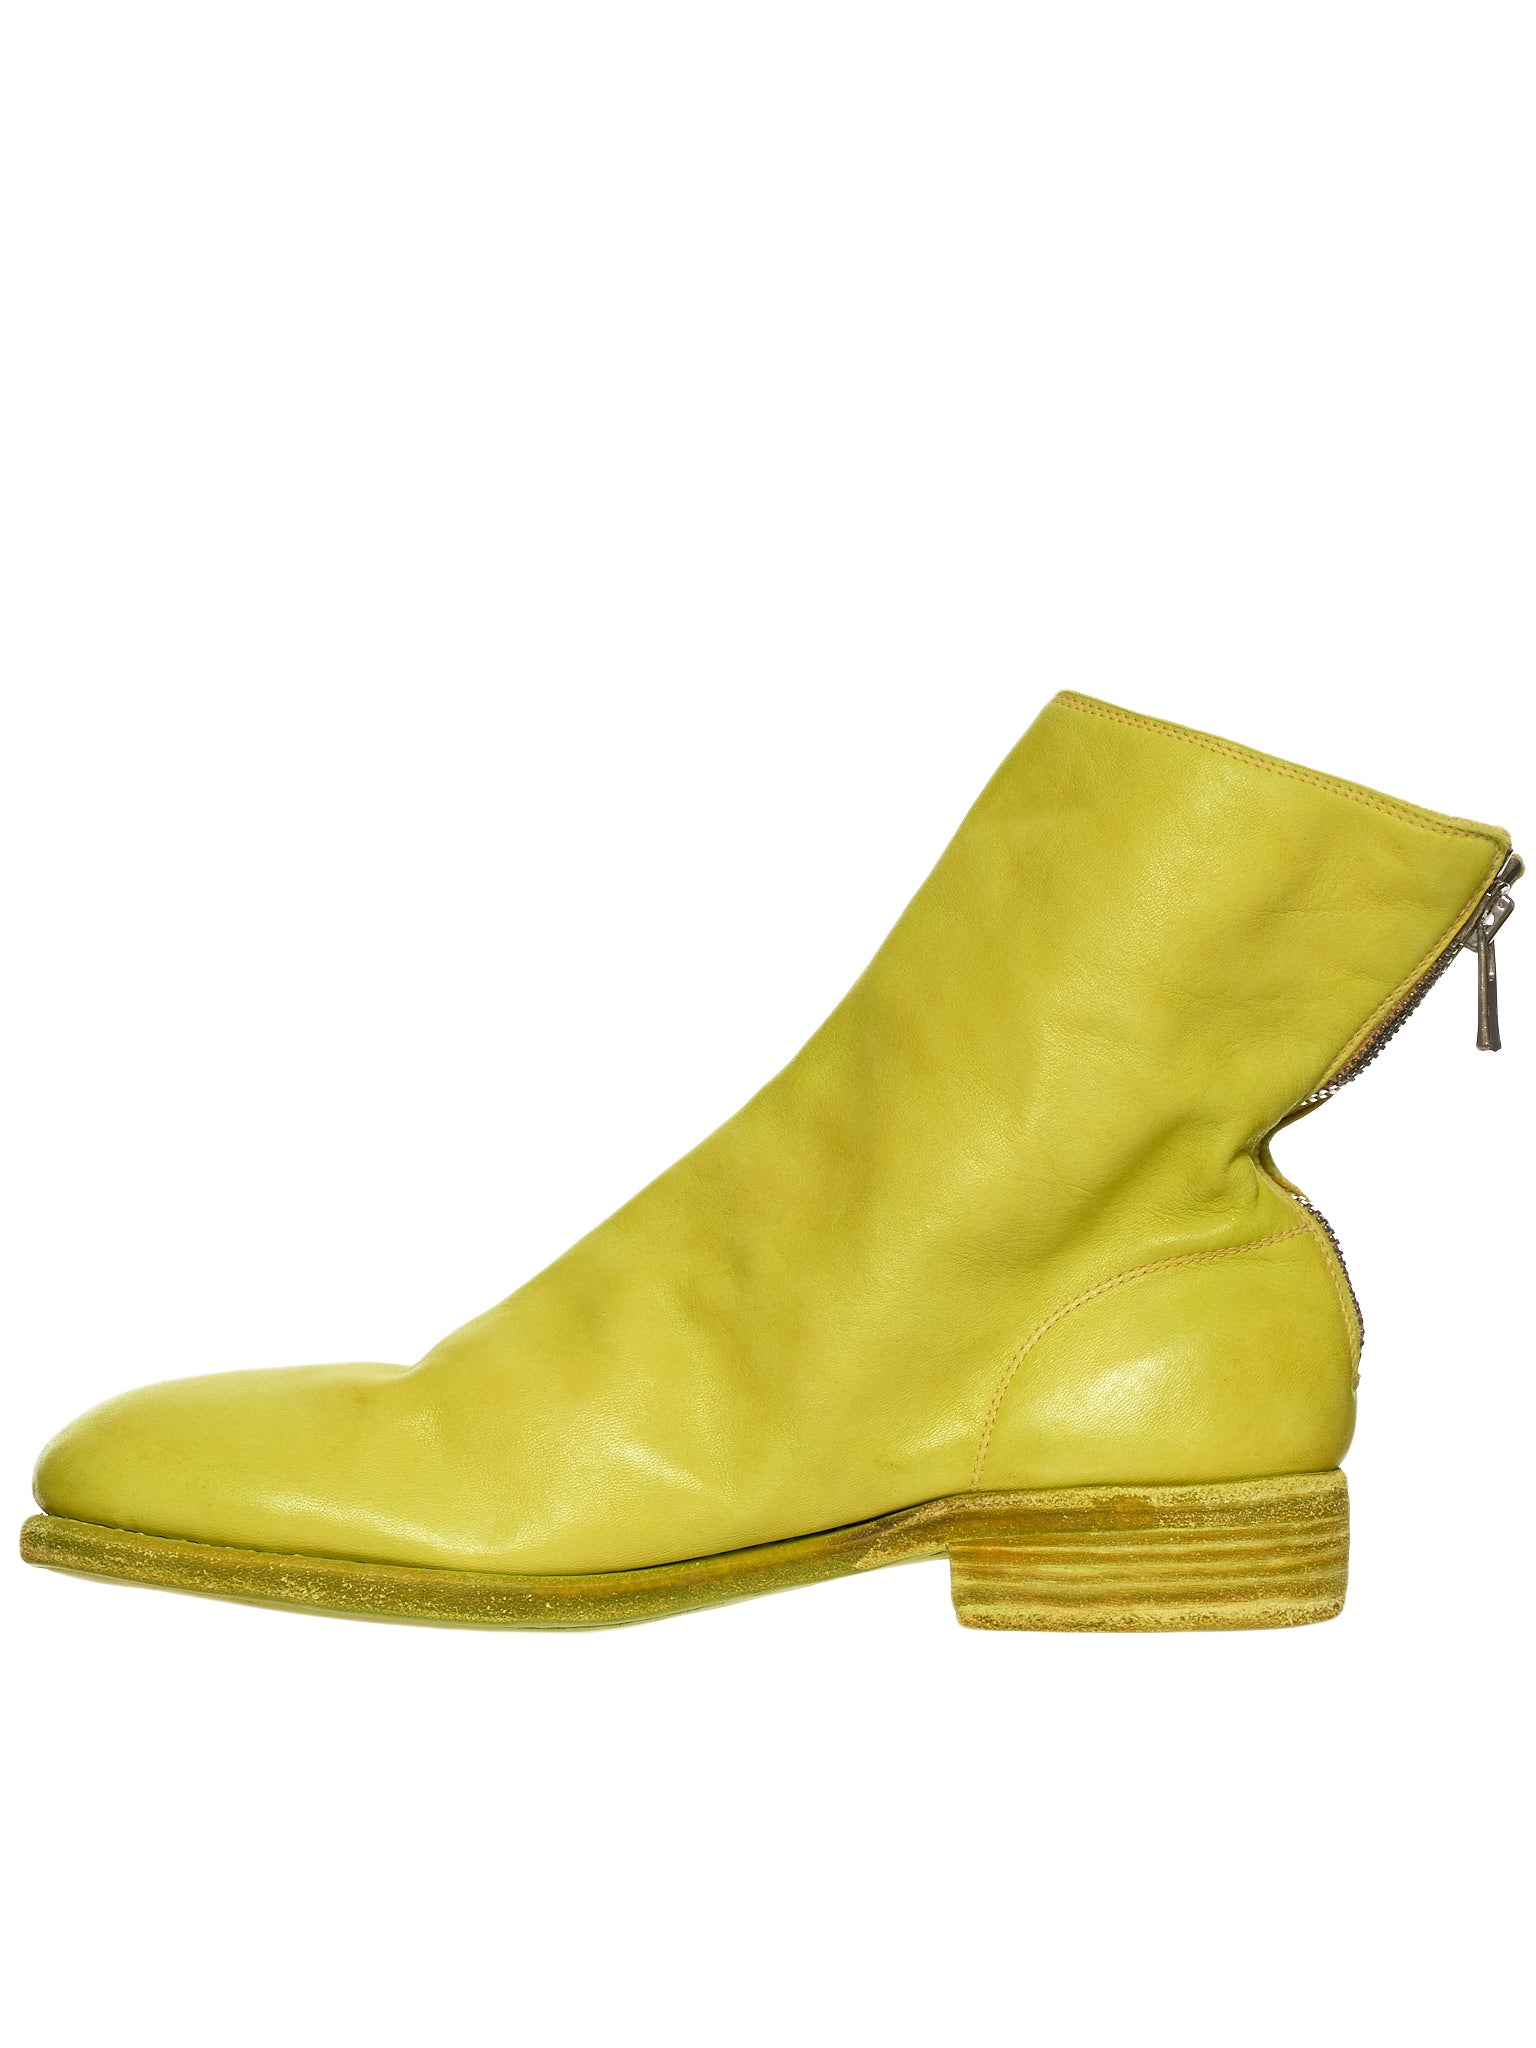 Guidi 986 Yellow Boot - Hlorenzo Back